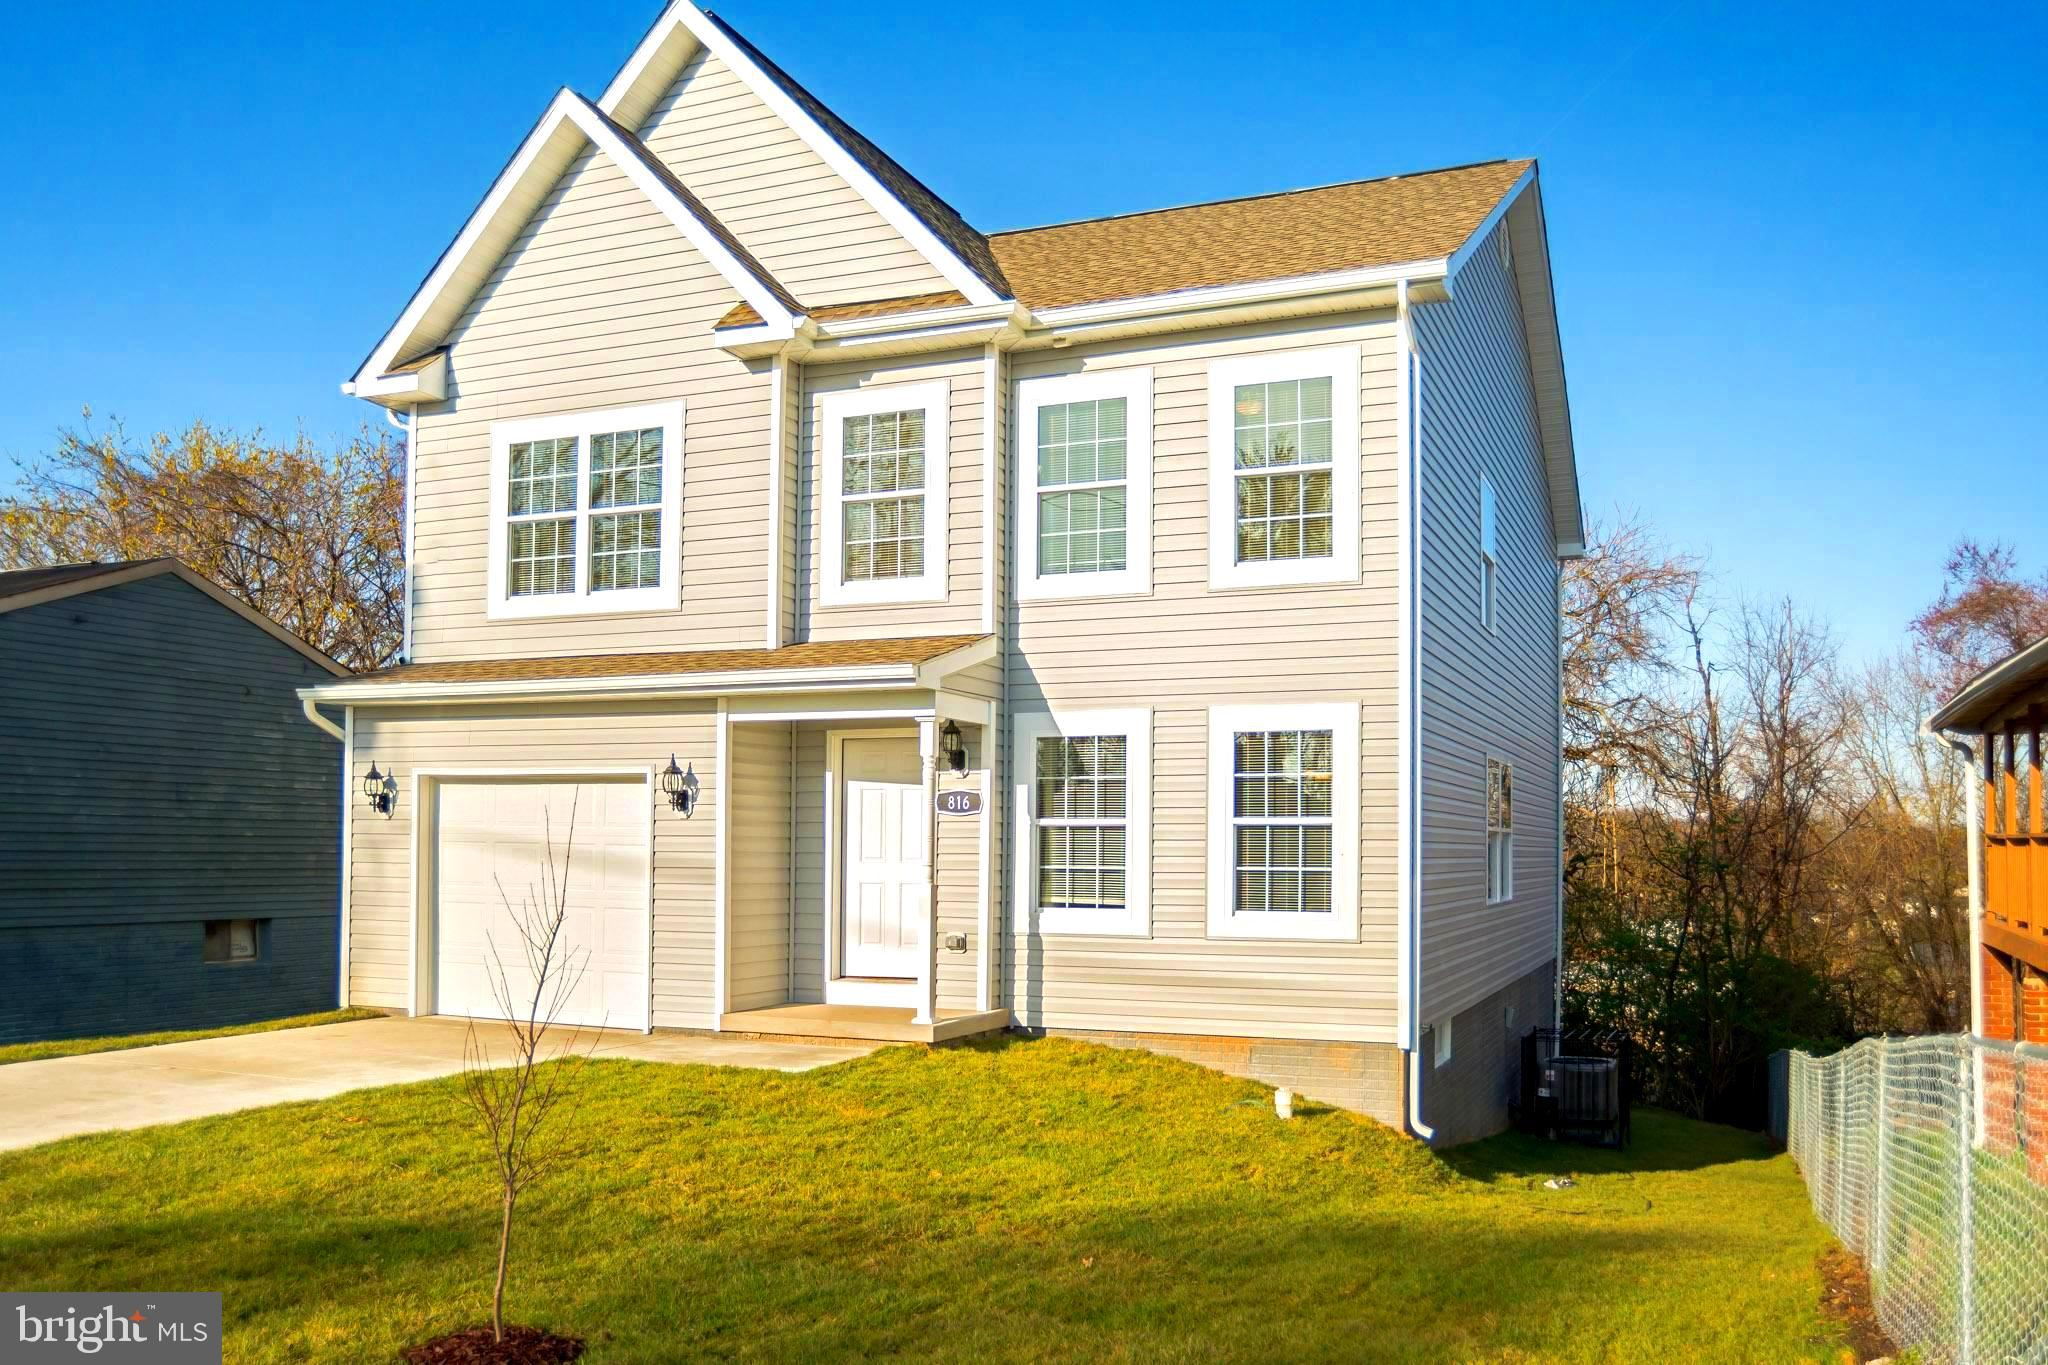 816 BALSAMTREE PLACE, CAPITOL HEIGHTS, MD 20743